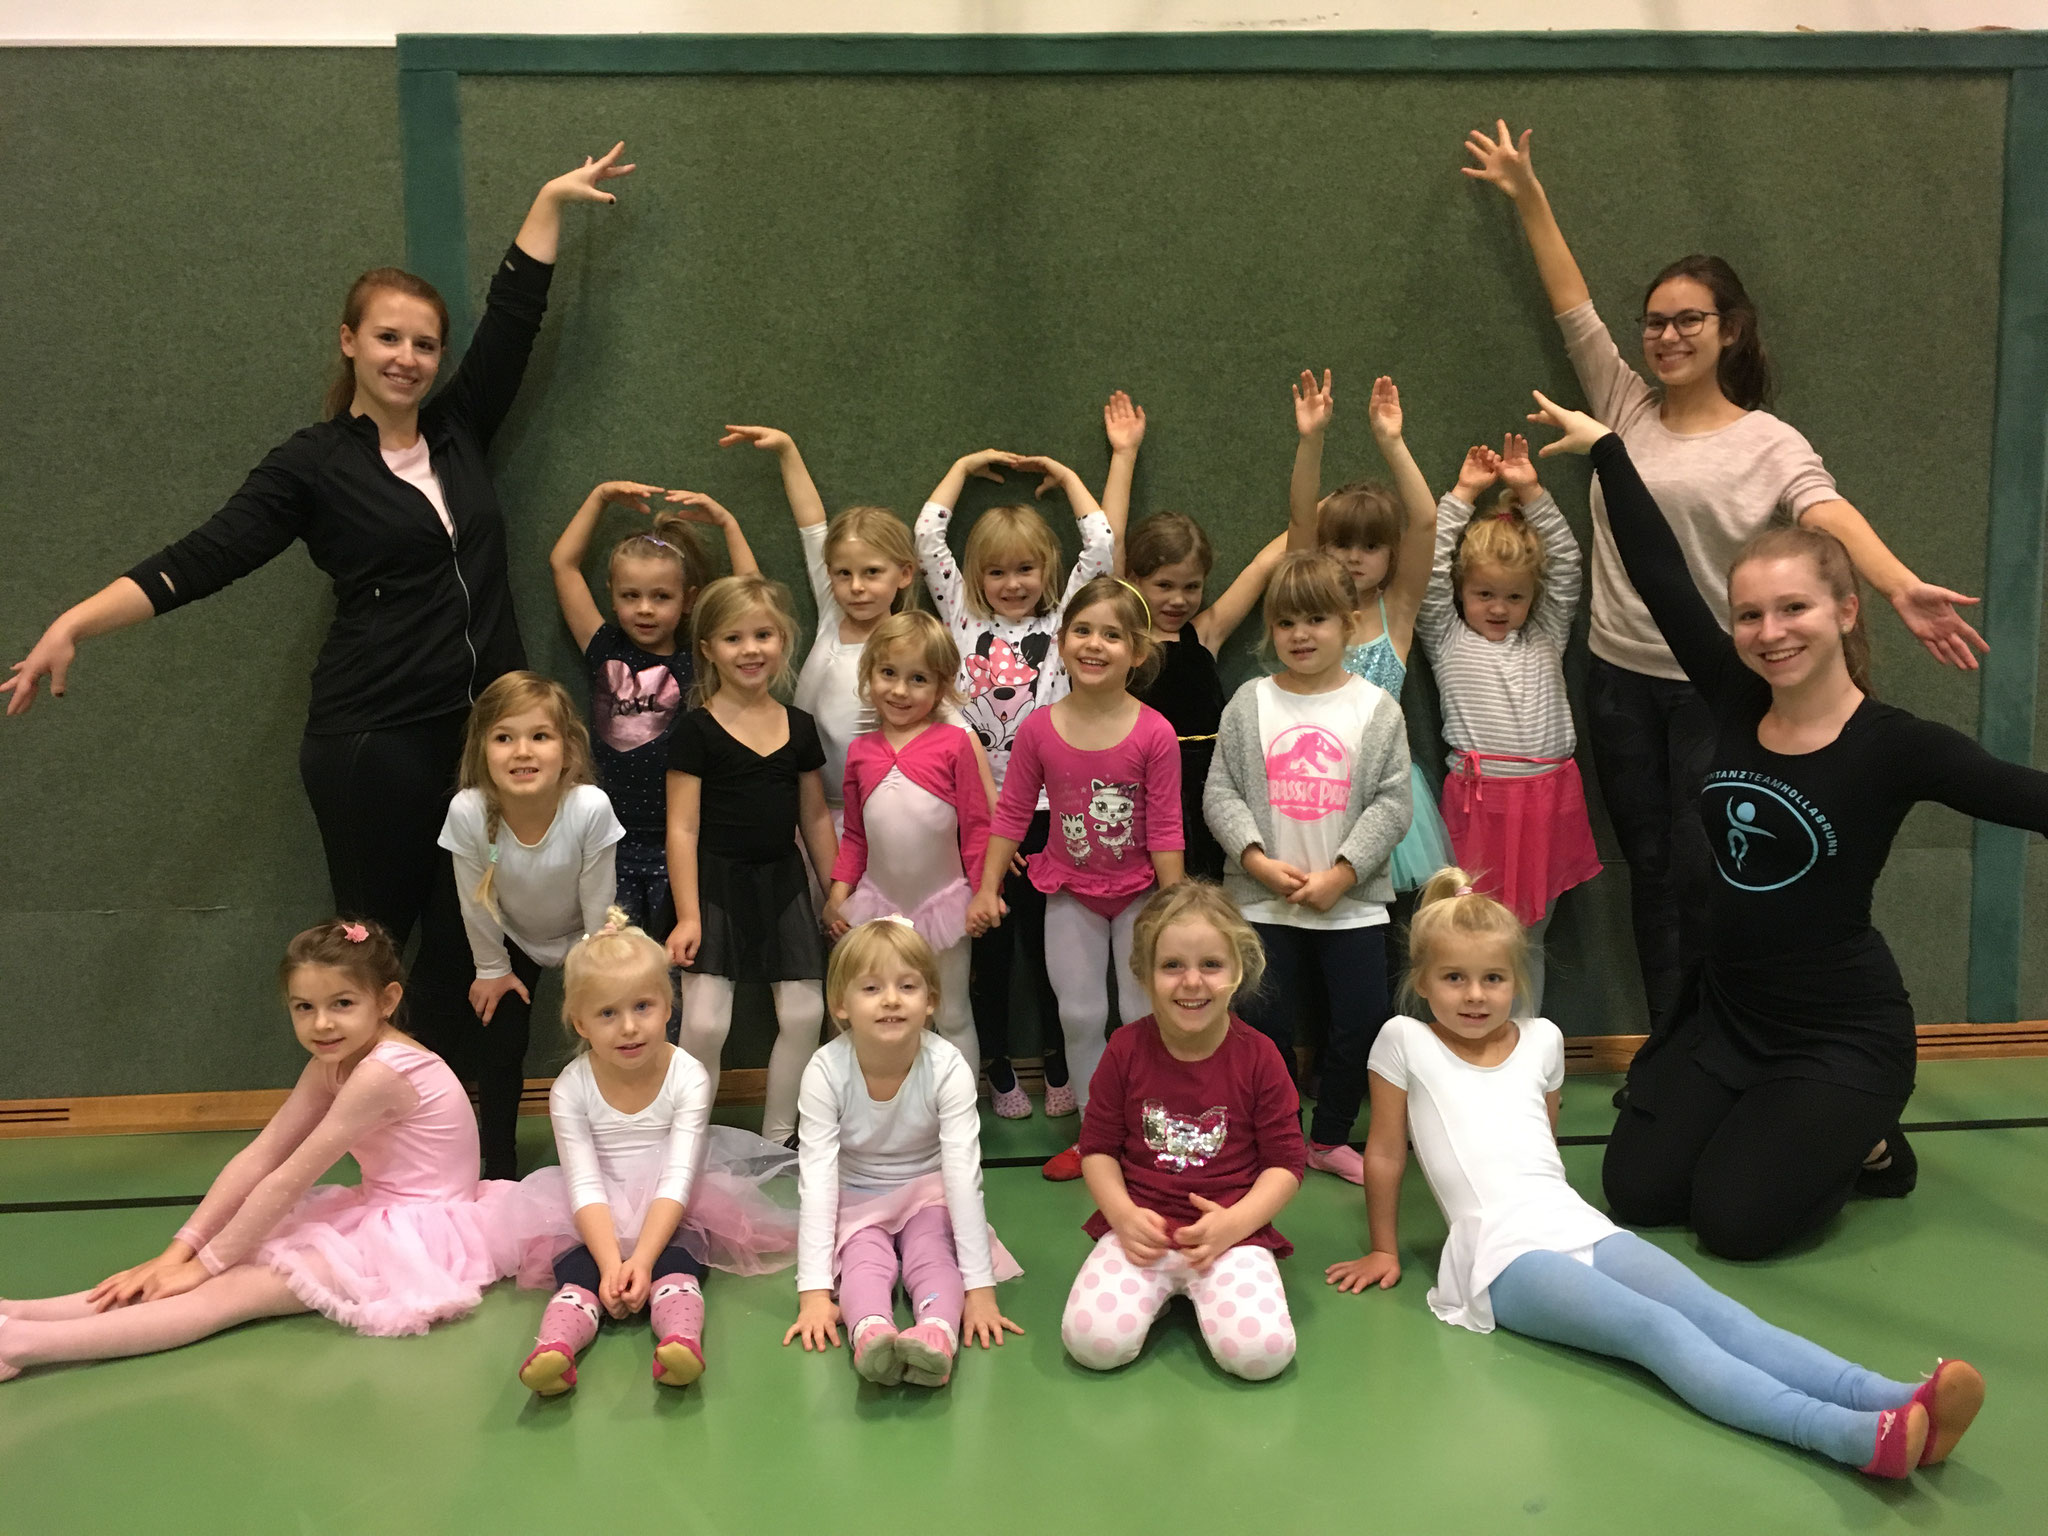 Ballett Kiddies - Juliane, Katharina & Patricia